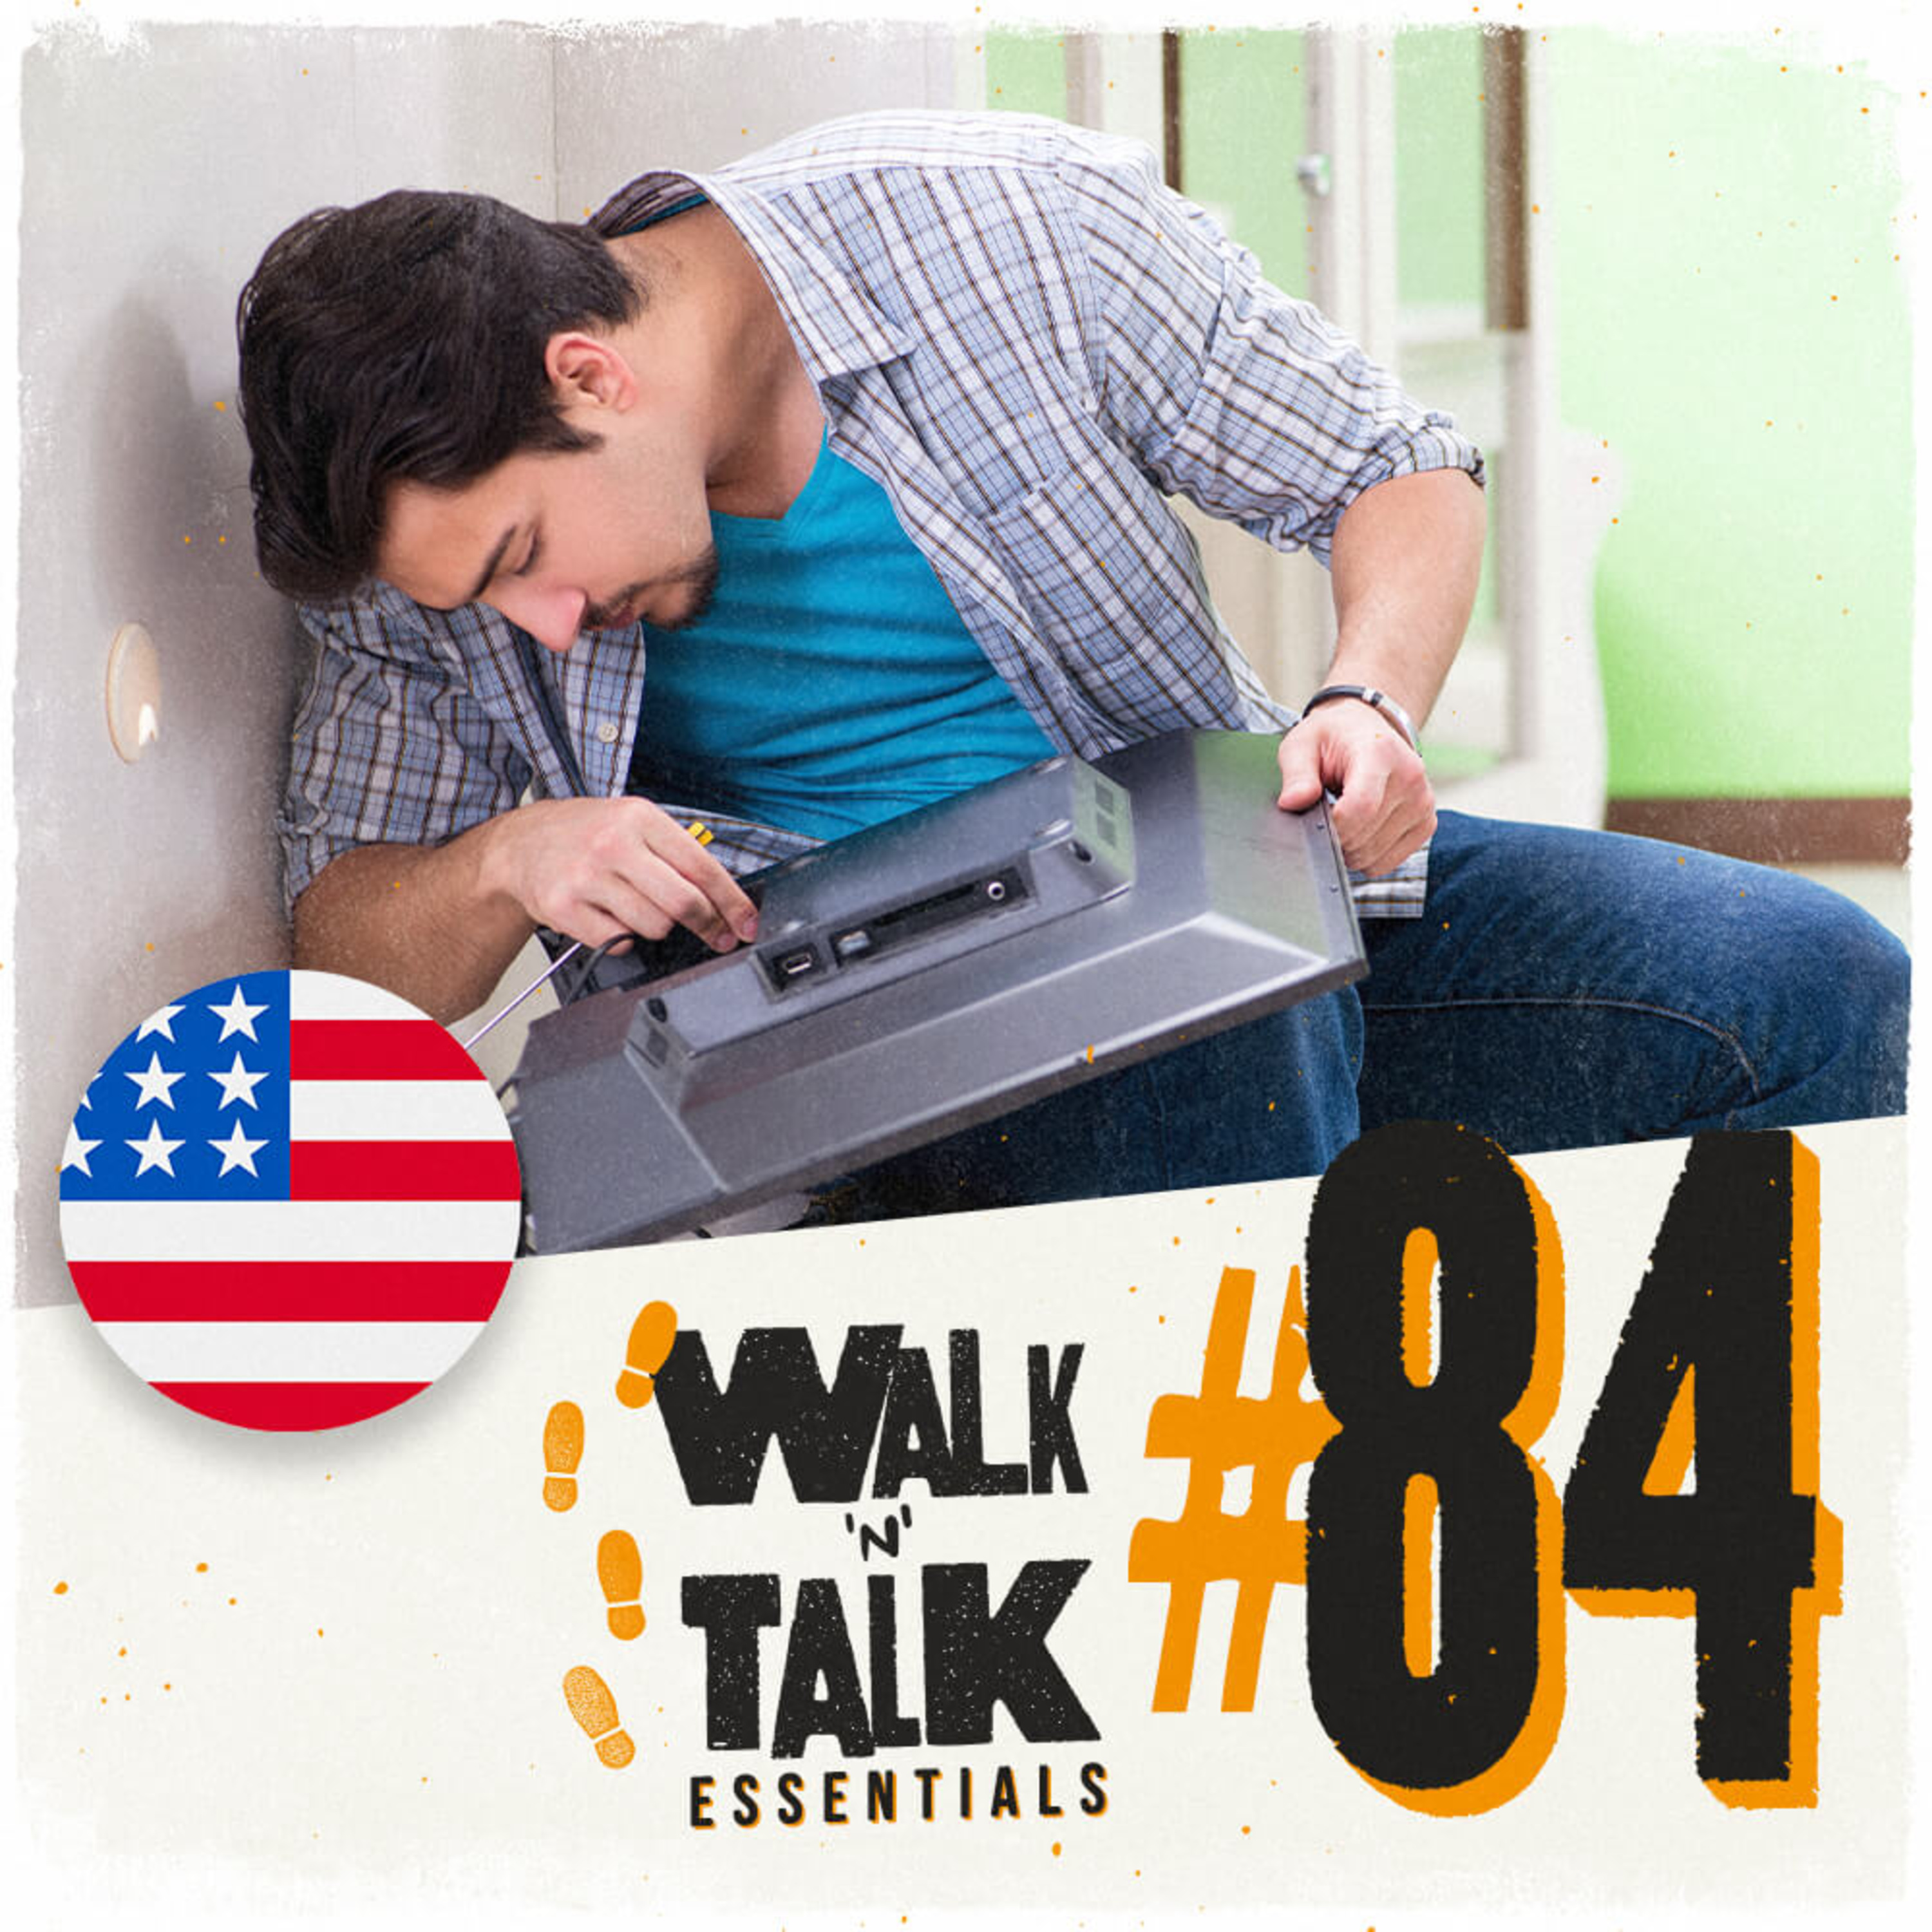 Walk 'n' Talk Essentials #84 - What are you doing?